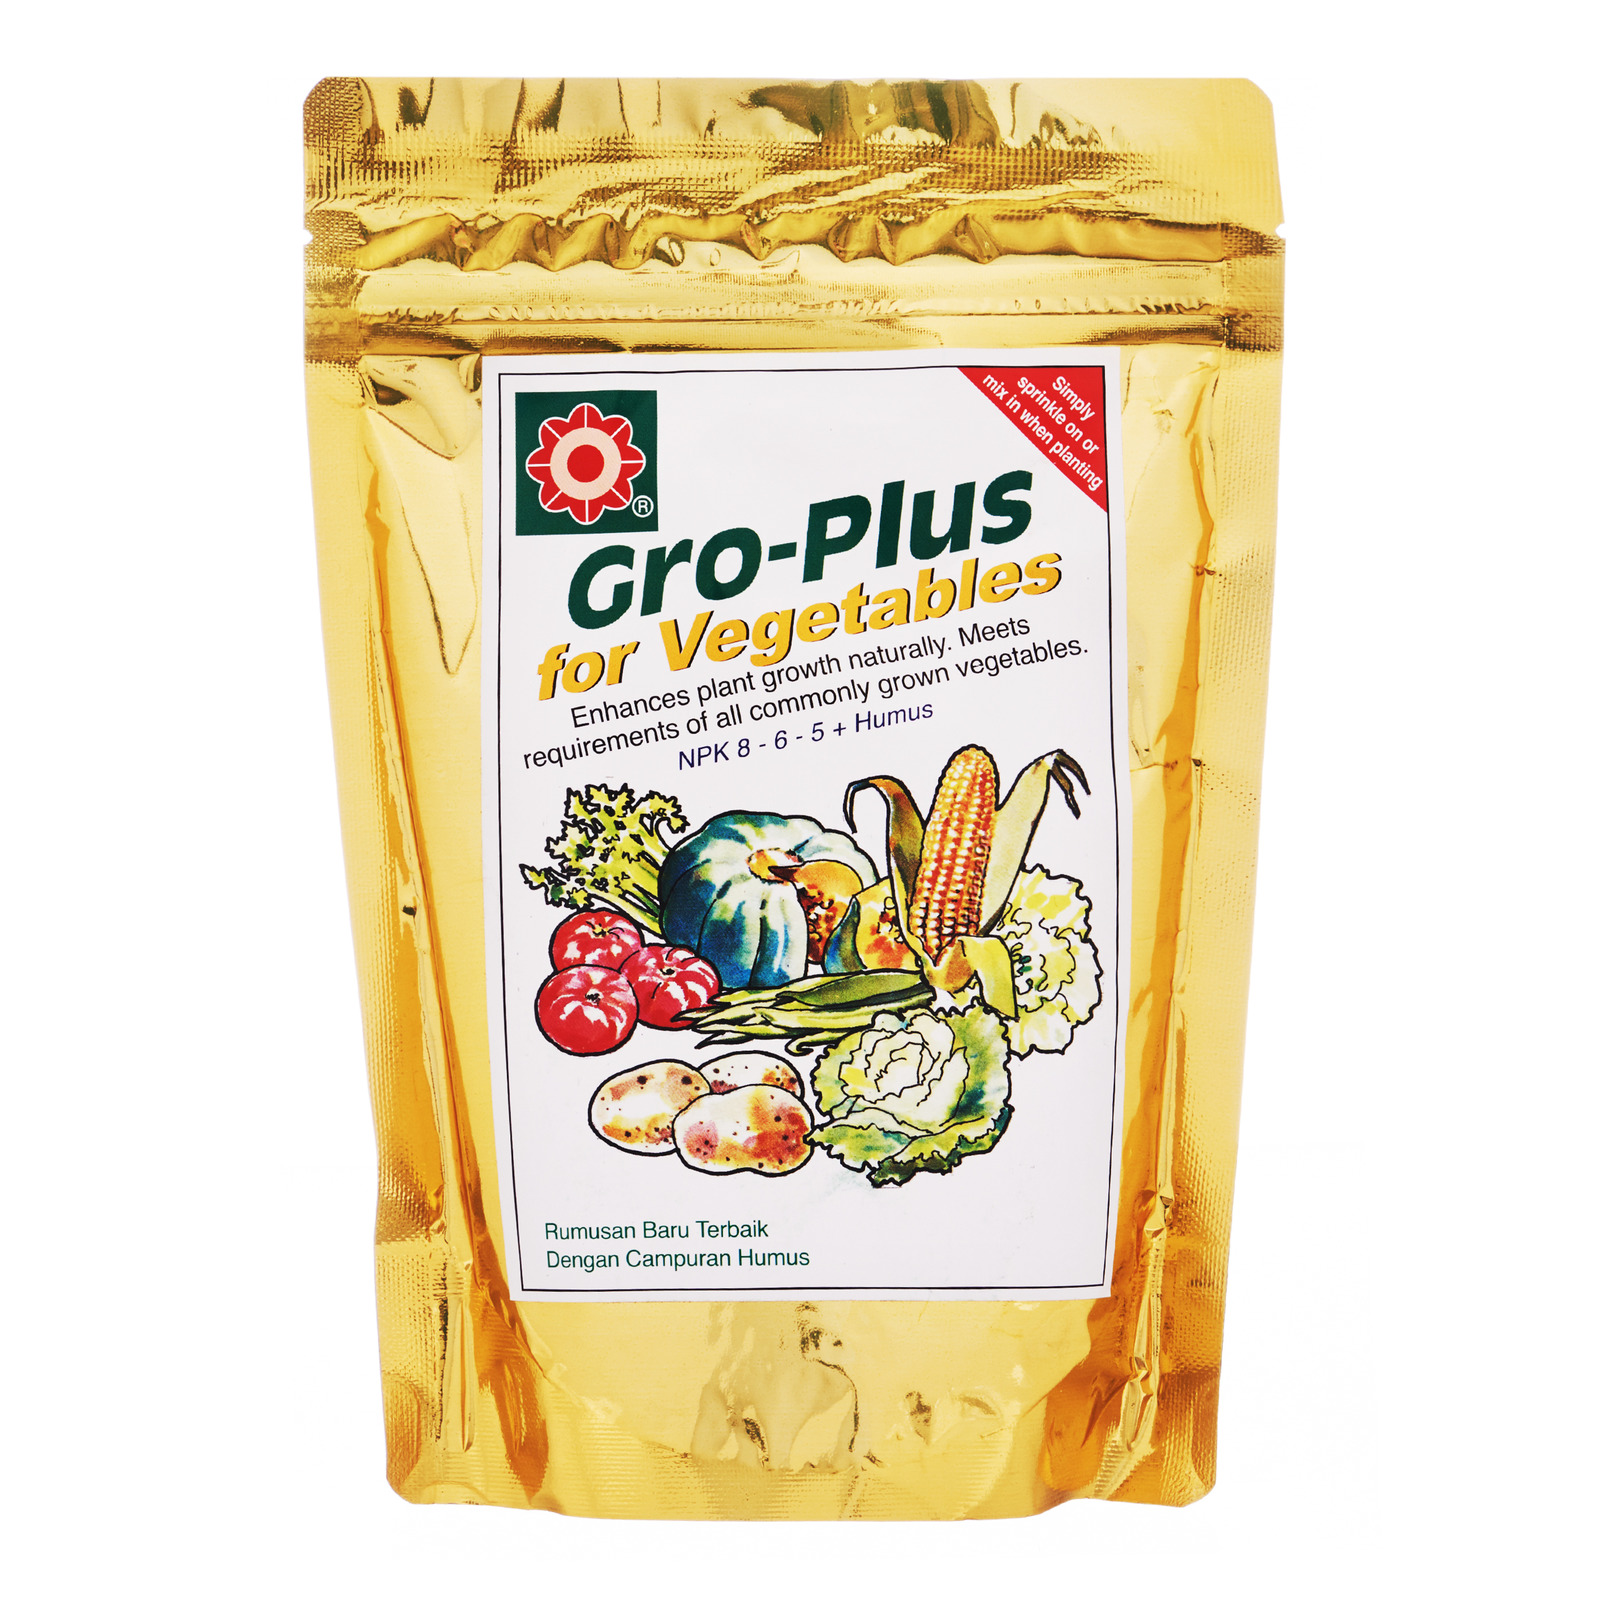 Horti Gro-Plus for Vegetables